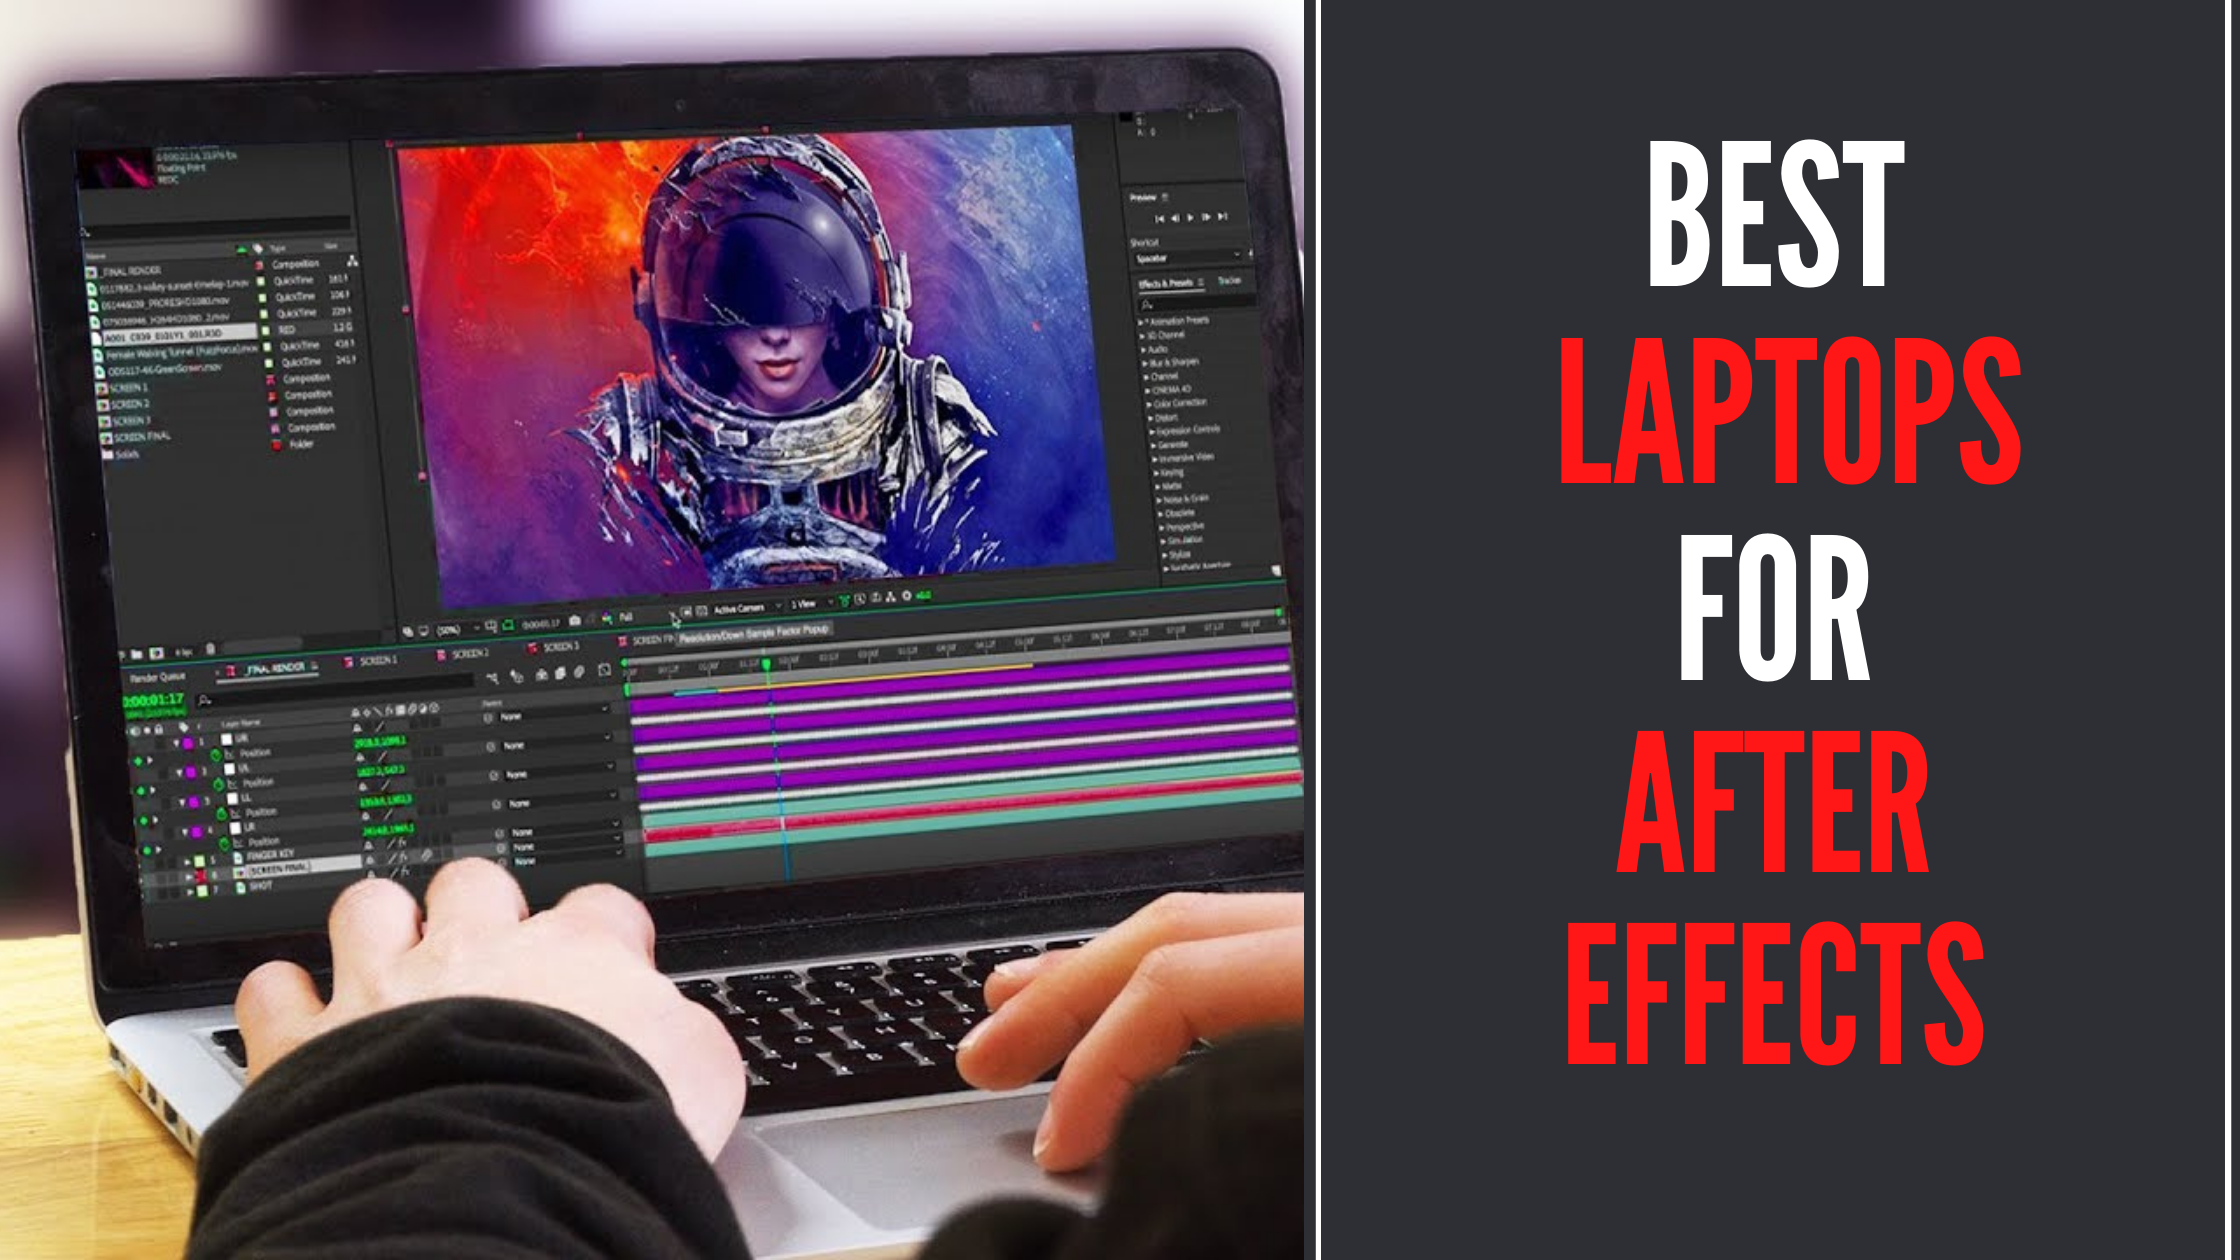 8 Best Laptops For After Effects In 2021 [Expert Recommendations]